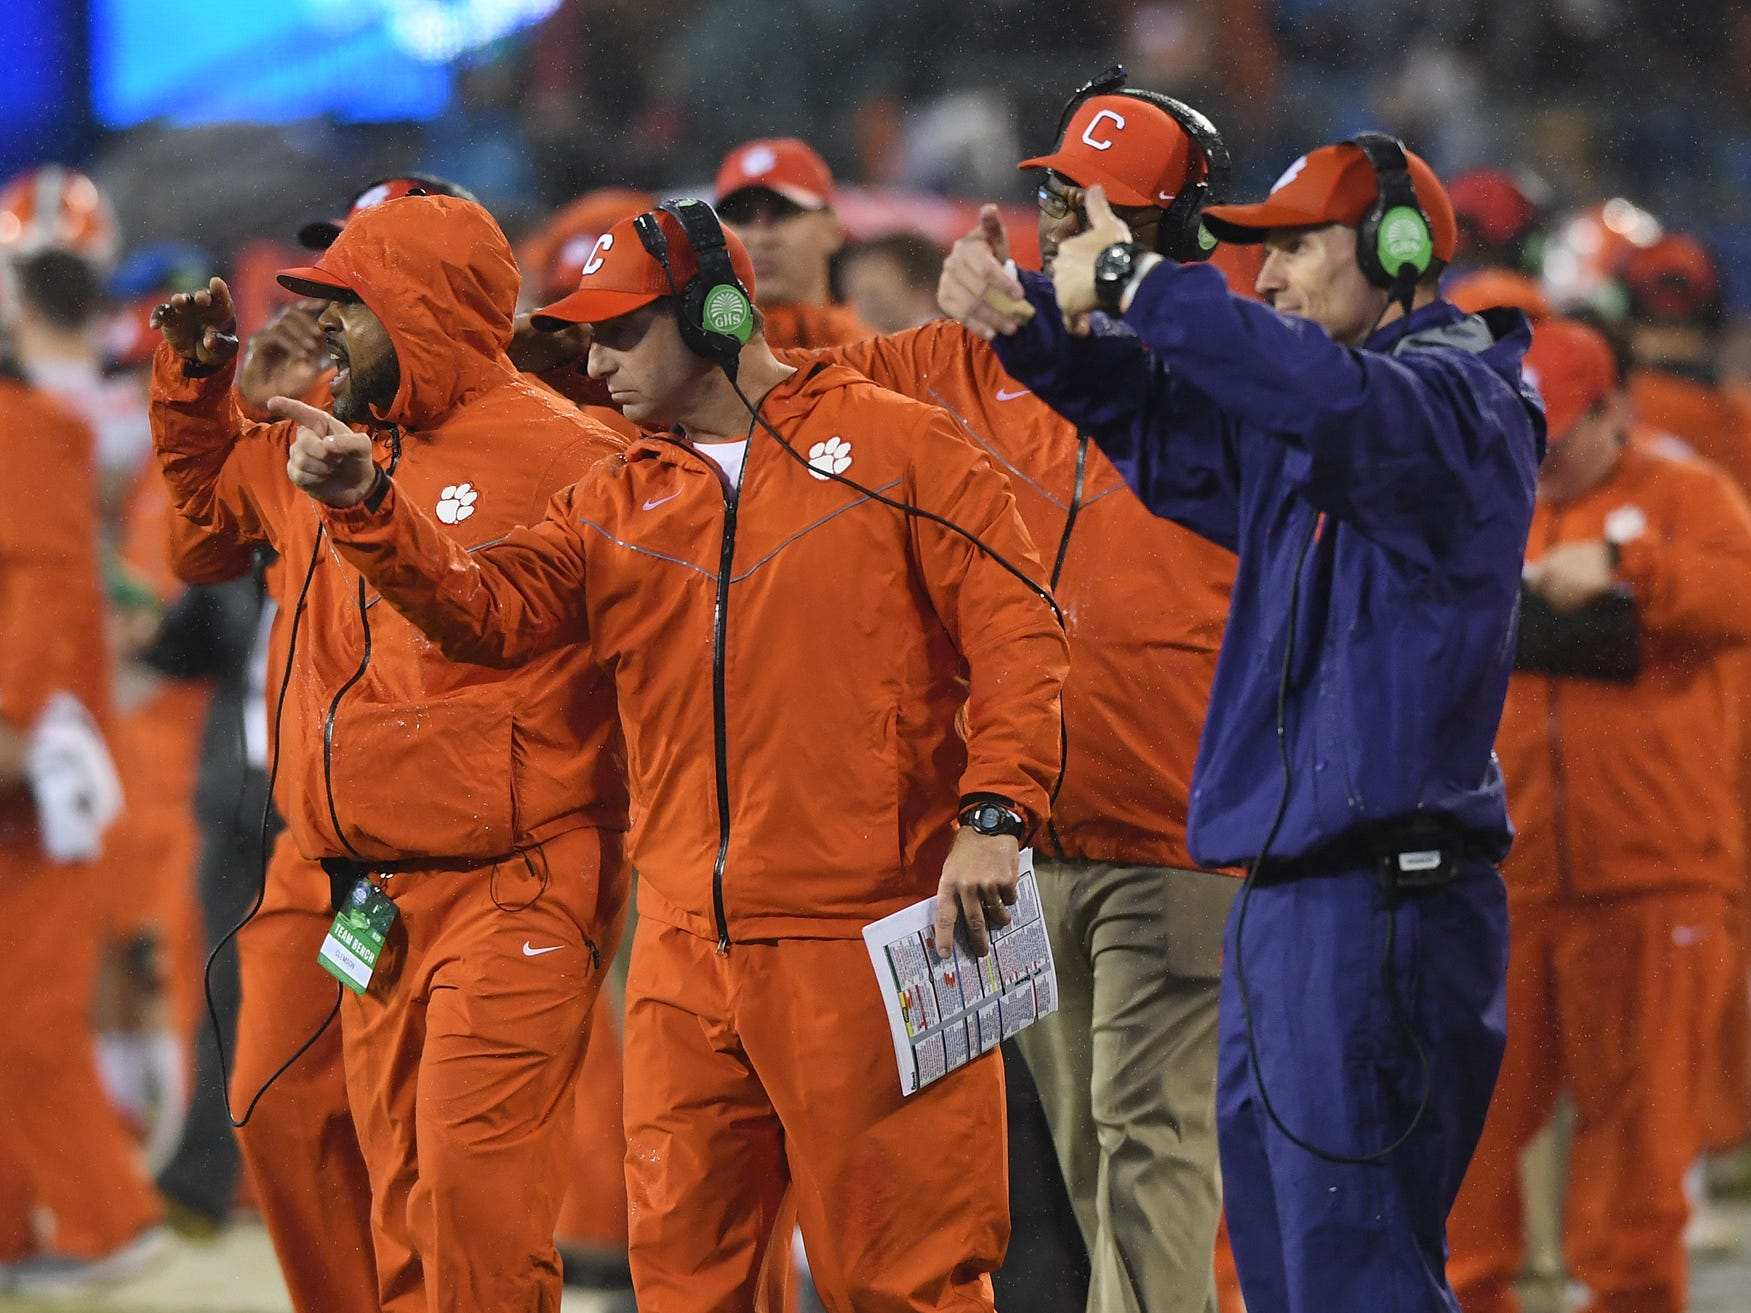 Clemson head coach Dabo Swinney during the 2nd quarter of the Dr. Pepper ACC Championship at Bank of America Stadium in Charlotte, N.C. Saturday, December 1, 2018.